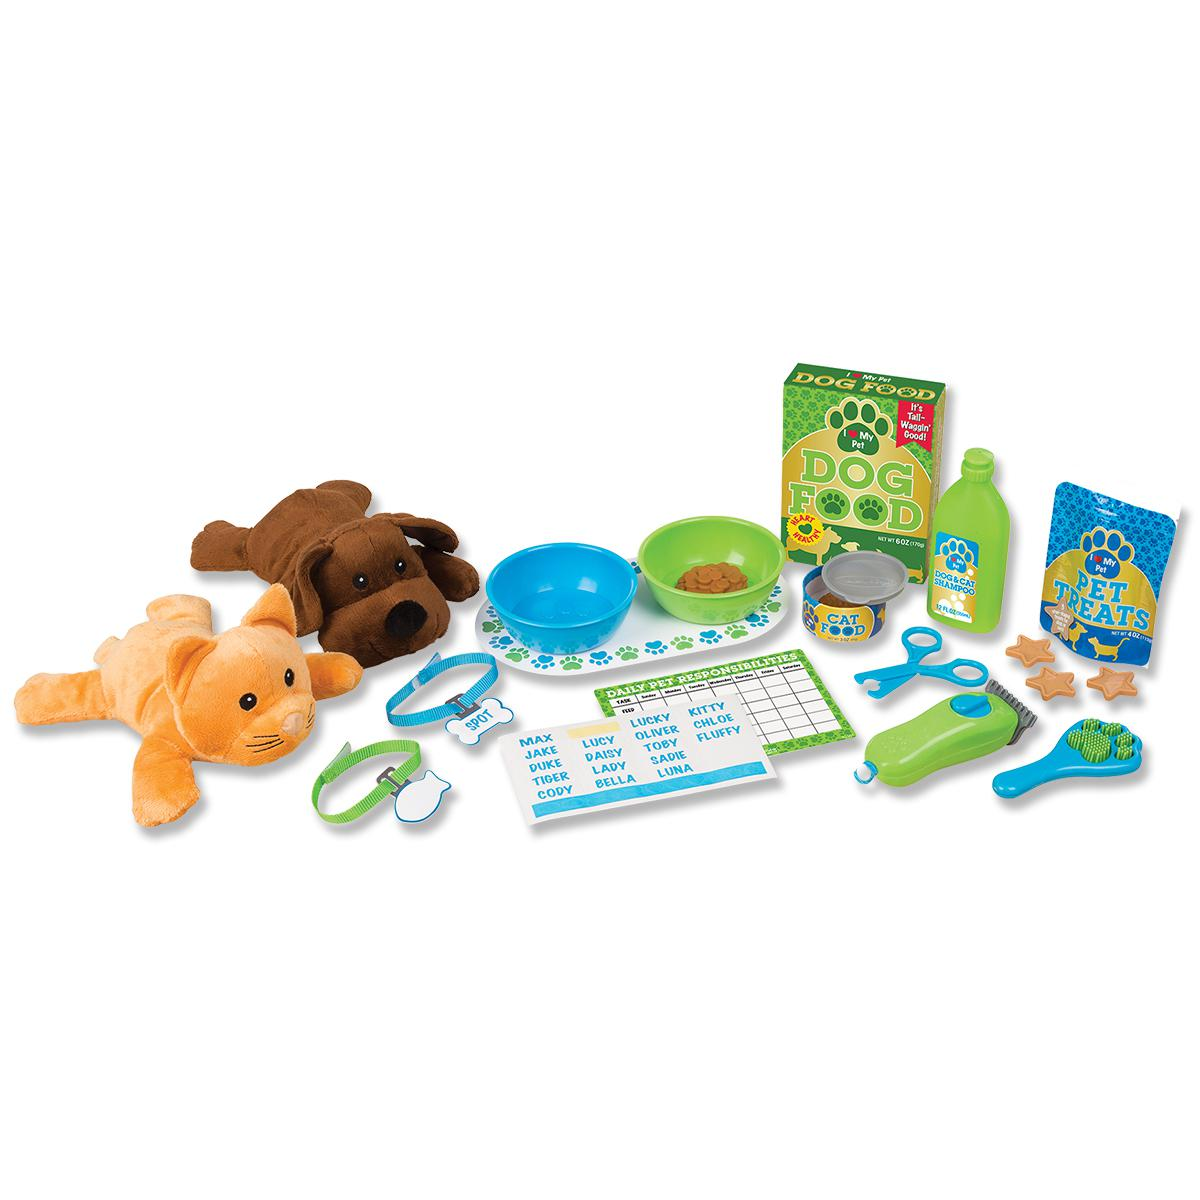 Pet Care Play Set Feeding & Grooming